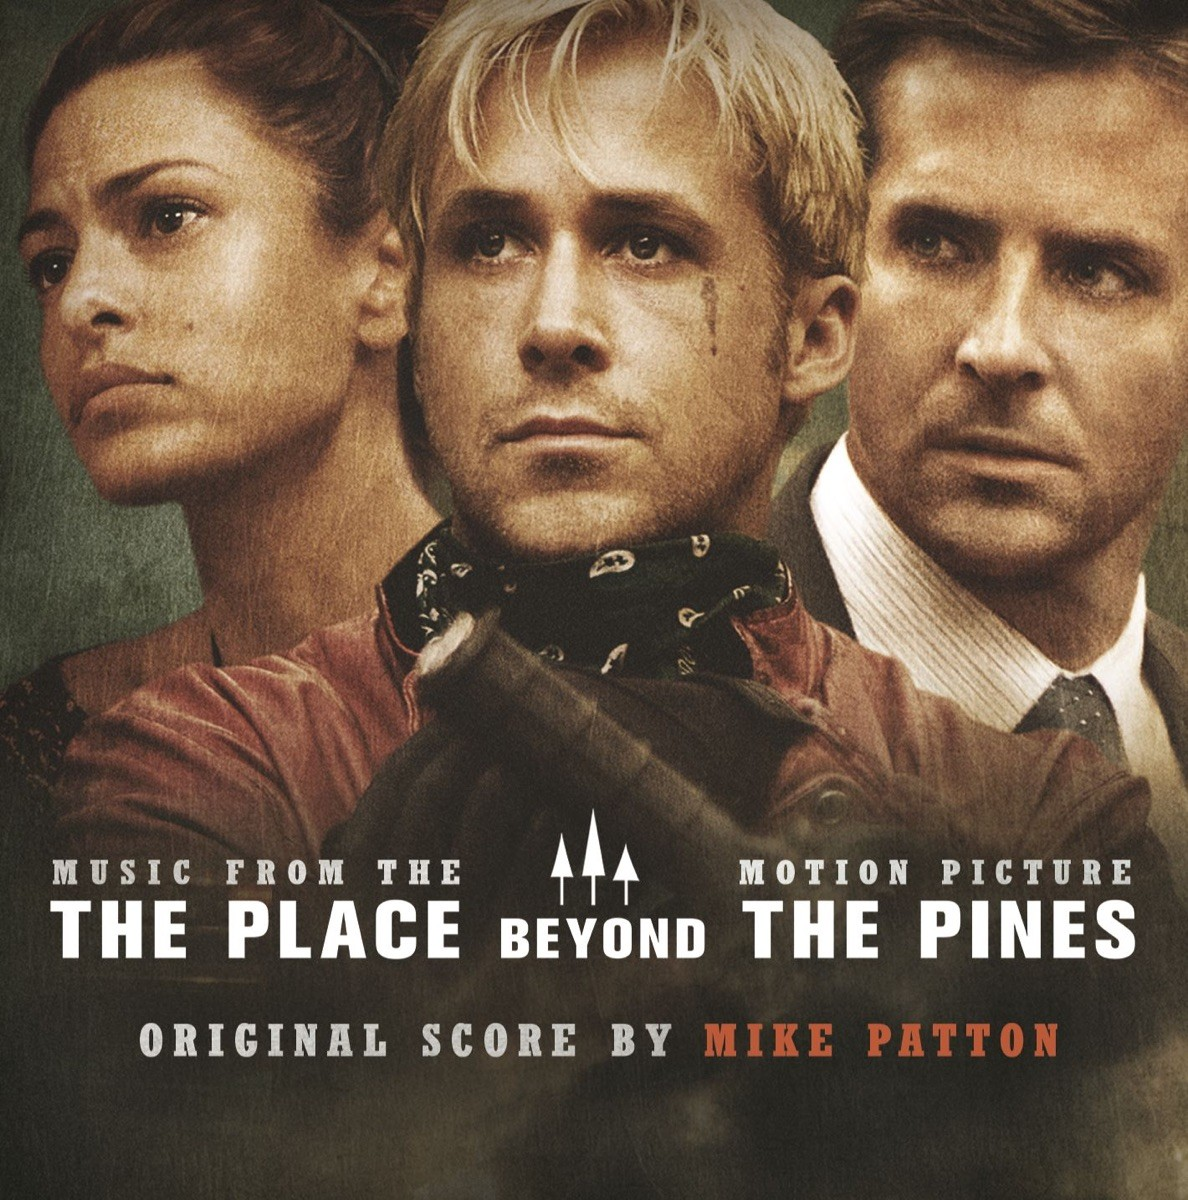 Mike Patton - The Place Beyond the Pines (Music From the Motion Picture) VINYL - MOVATM318